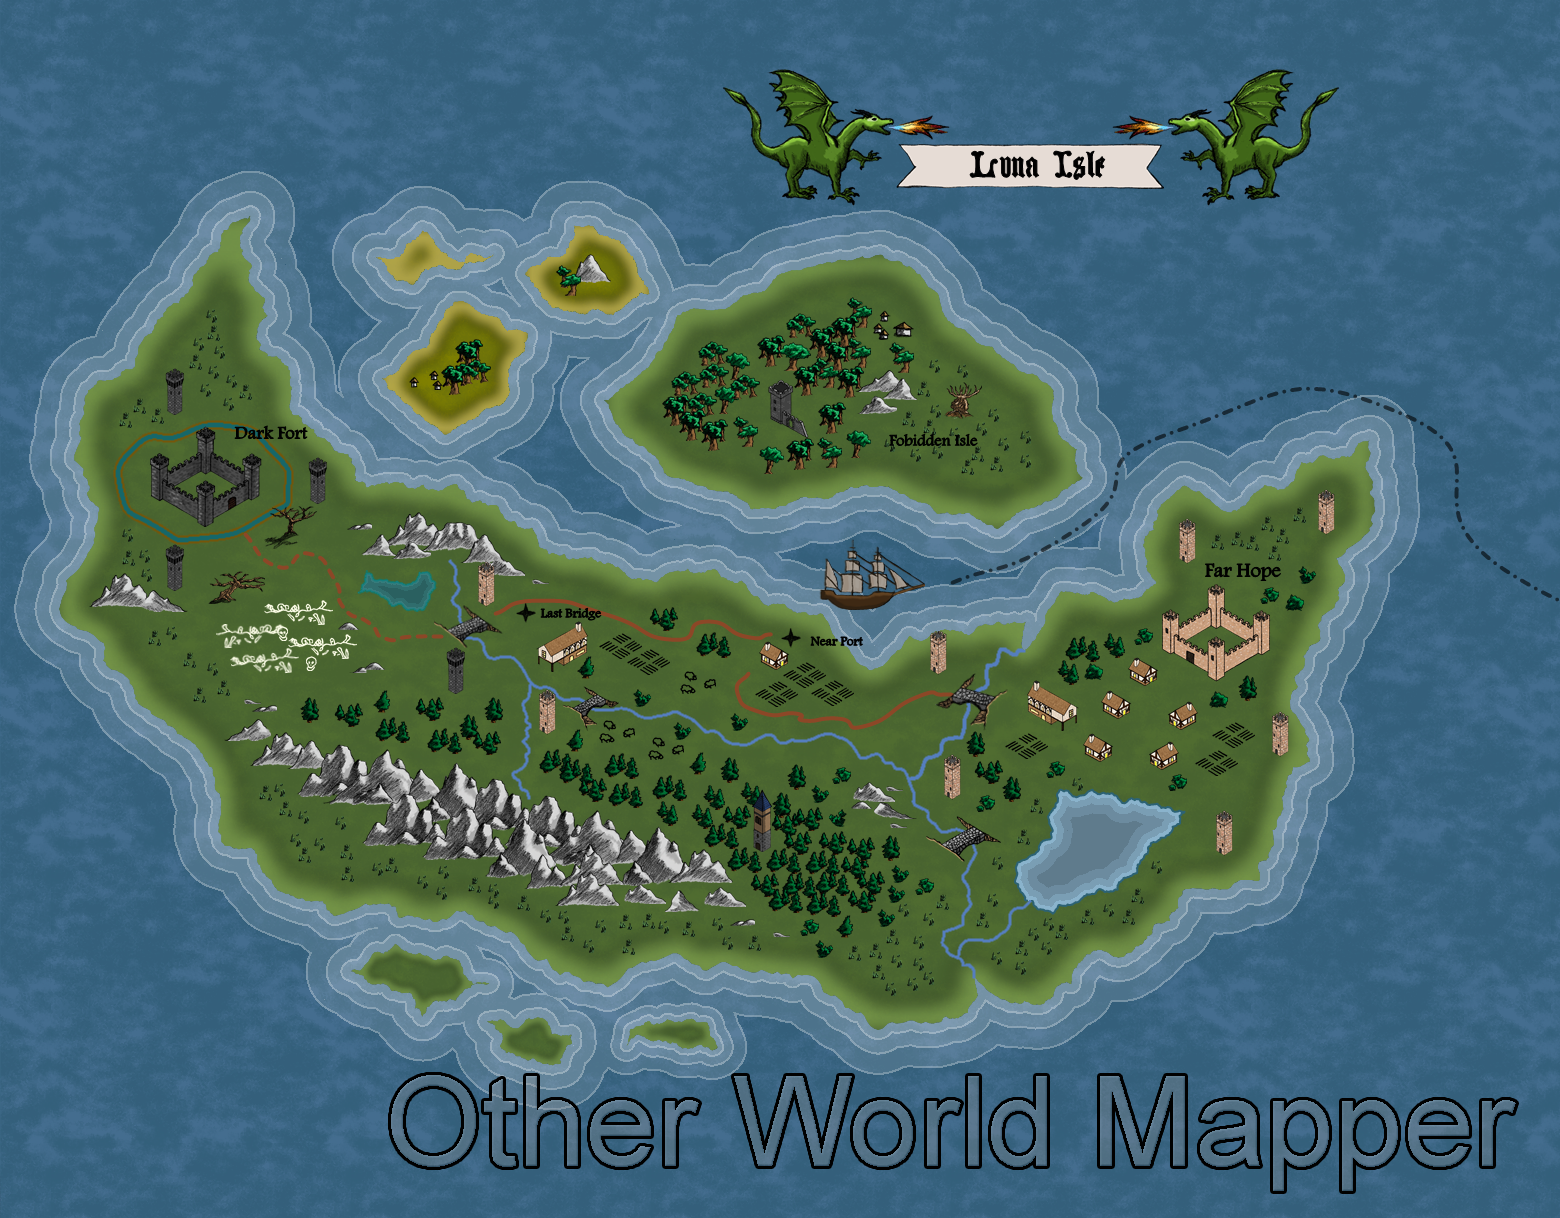 Other world mapper map design software by three minds software color map created from start to finish with other world mapper gumiabroncs Gallery